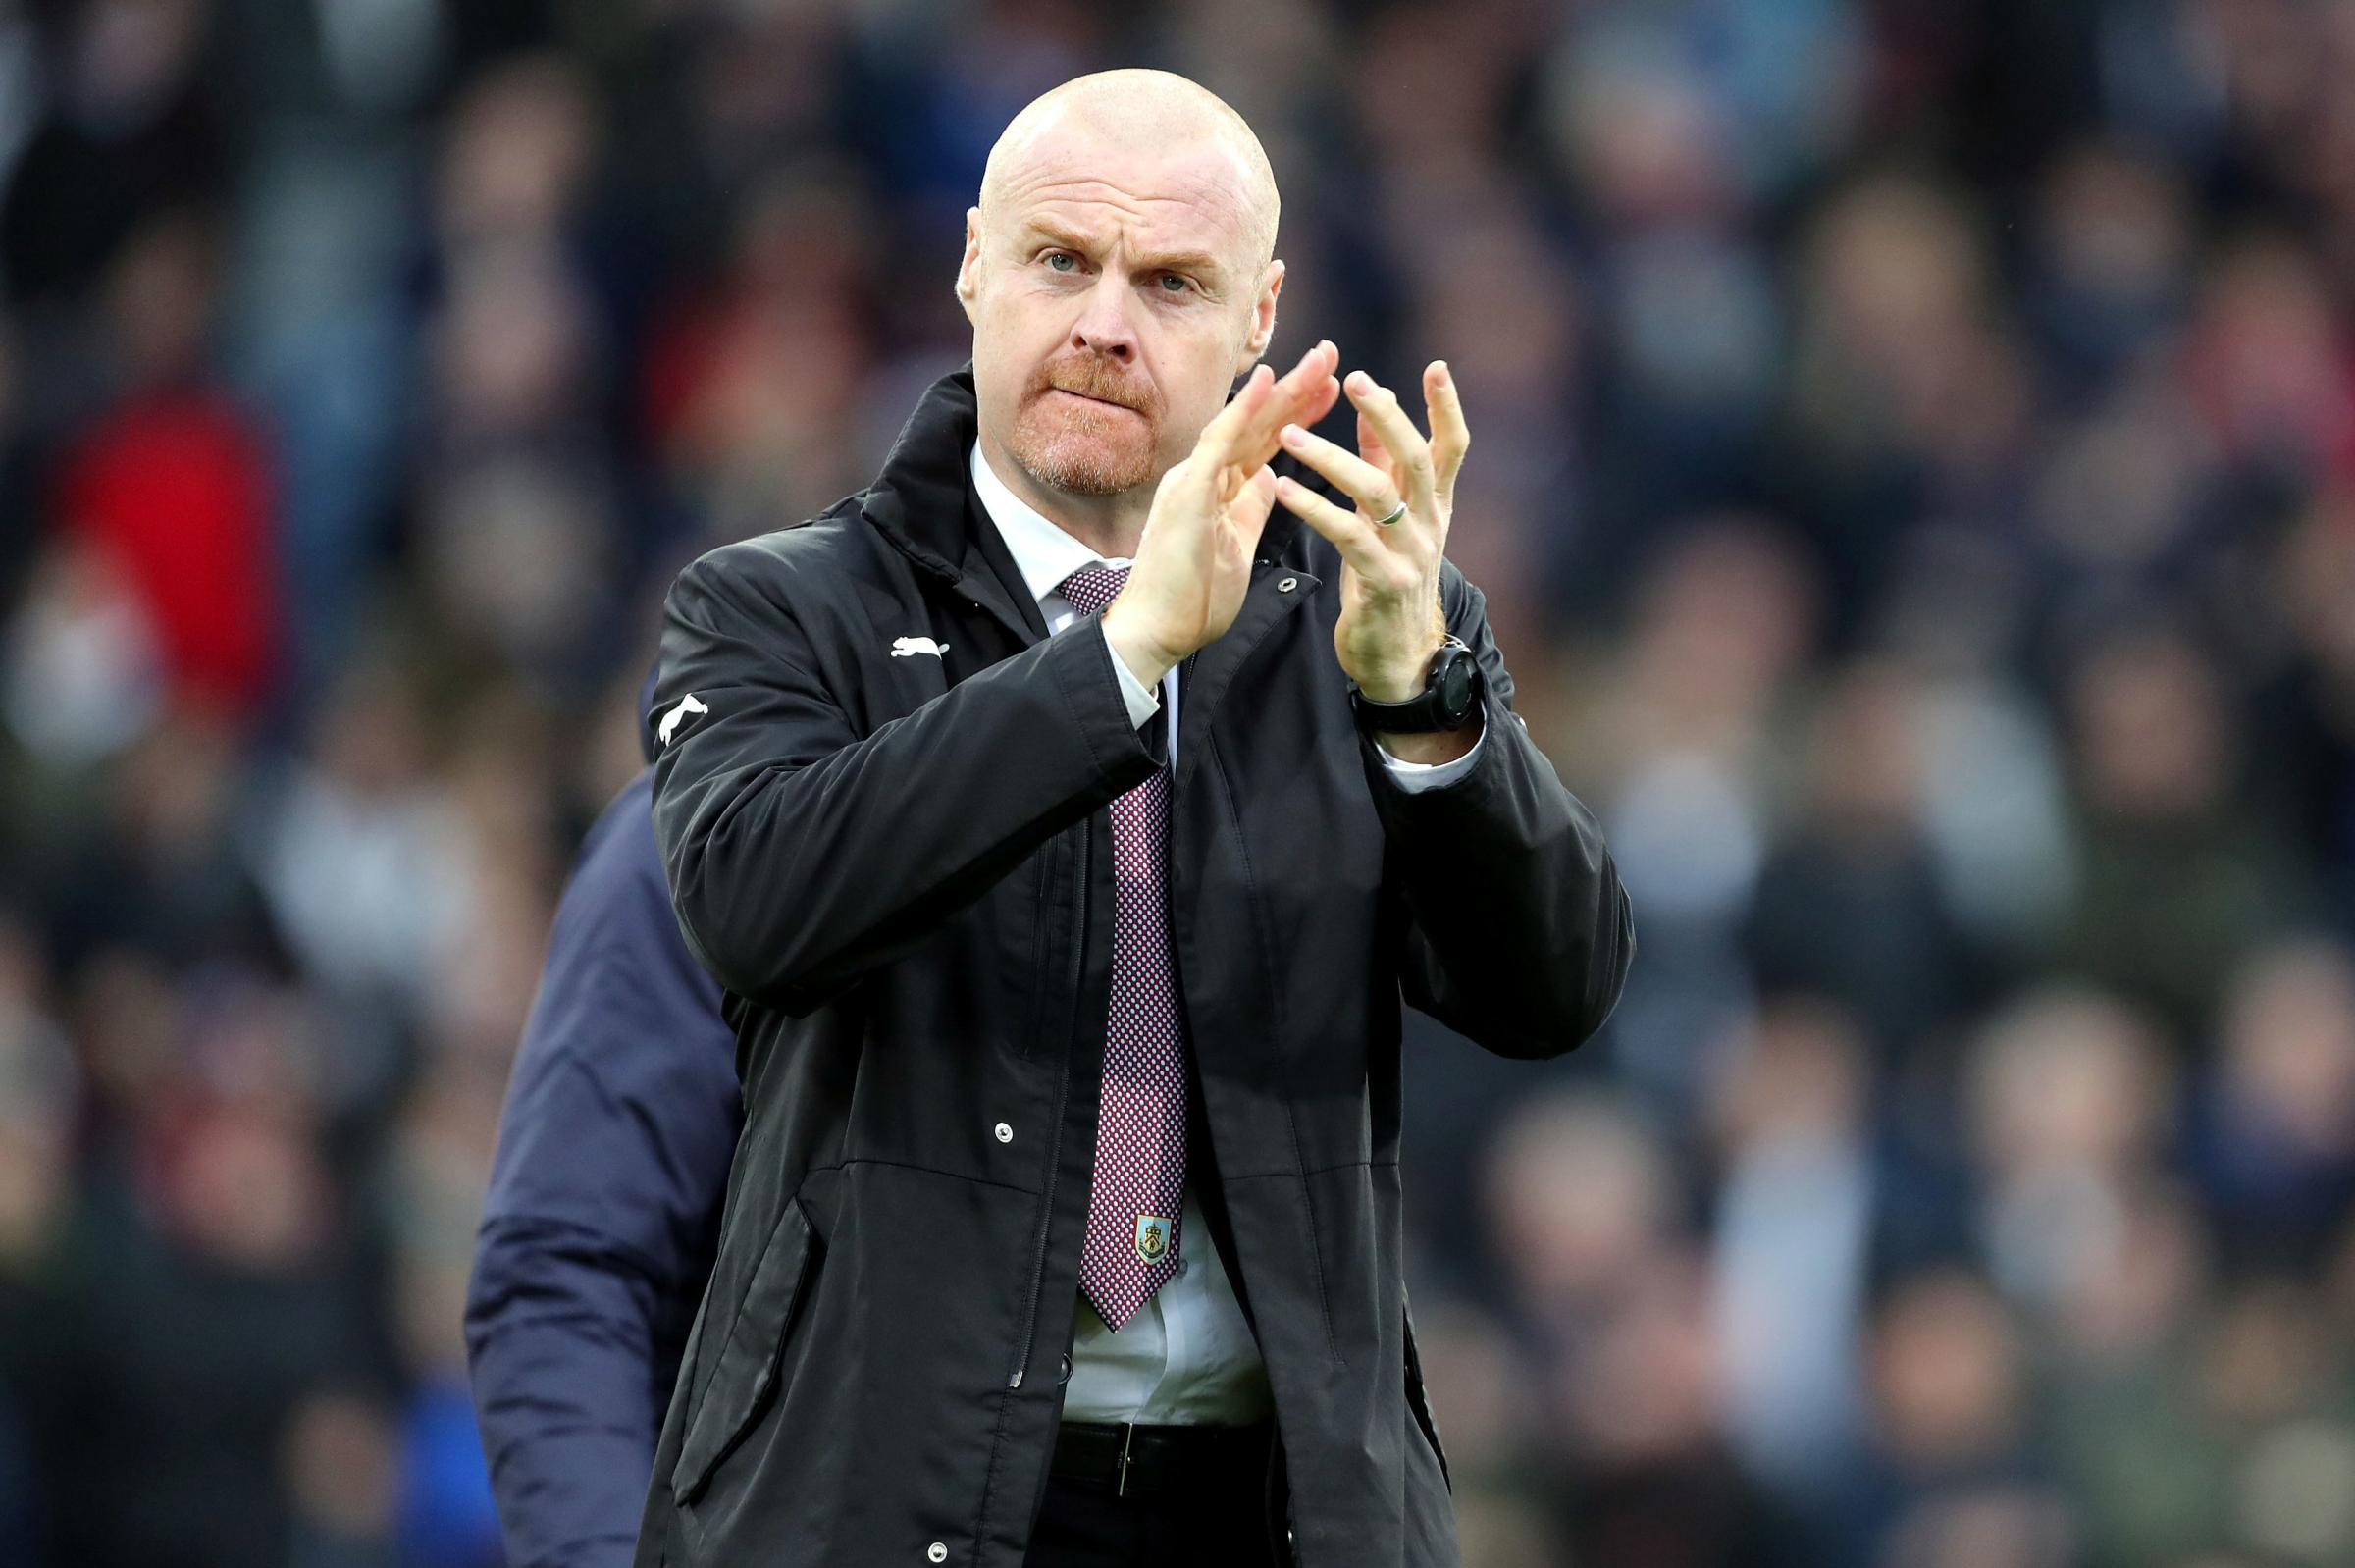 Sean Dyche knows Burnley will have to work to kick on next season